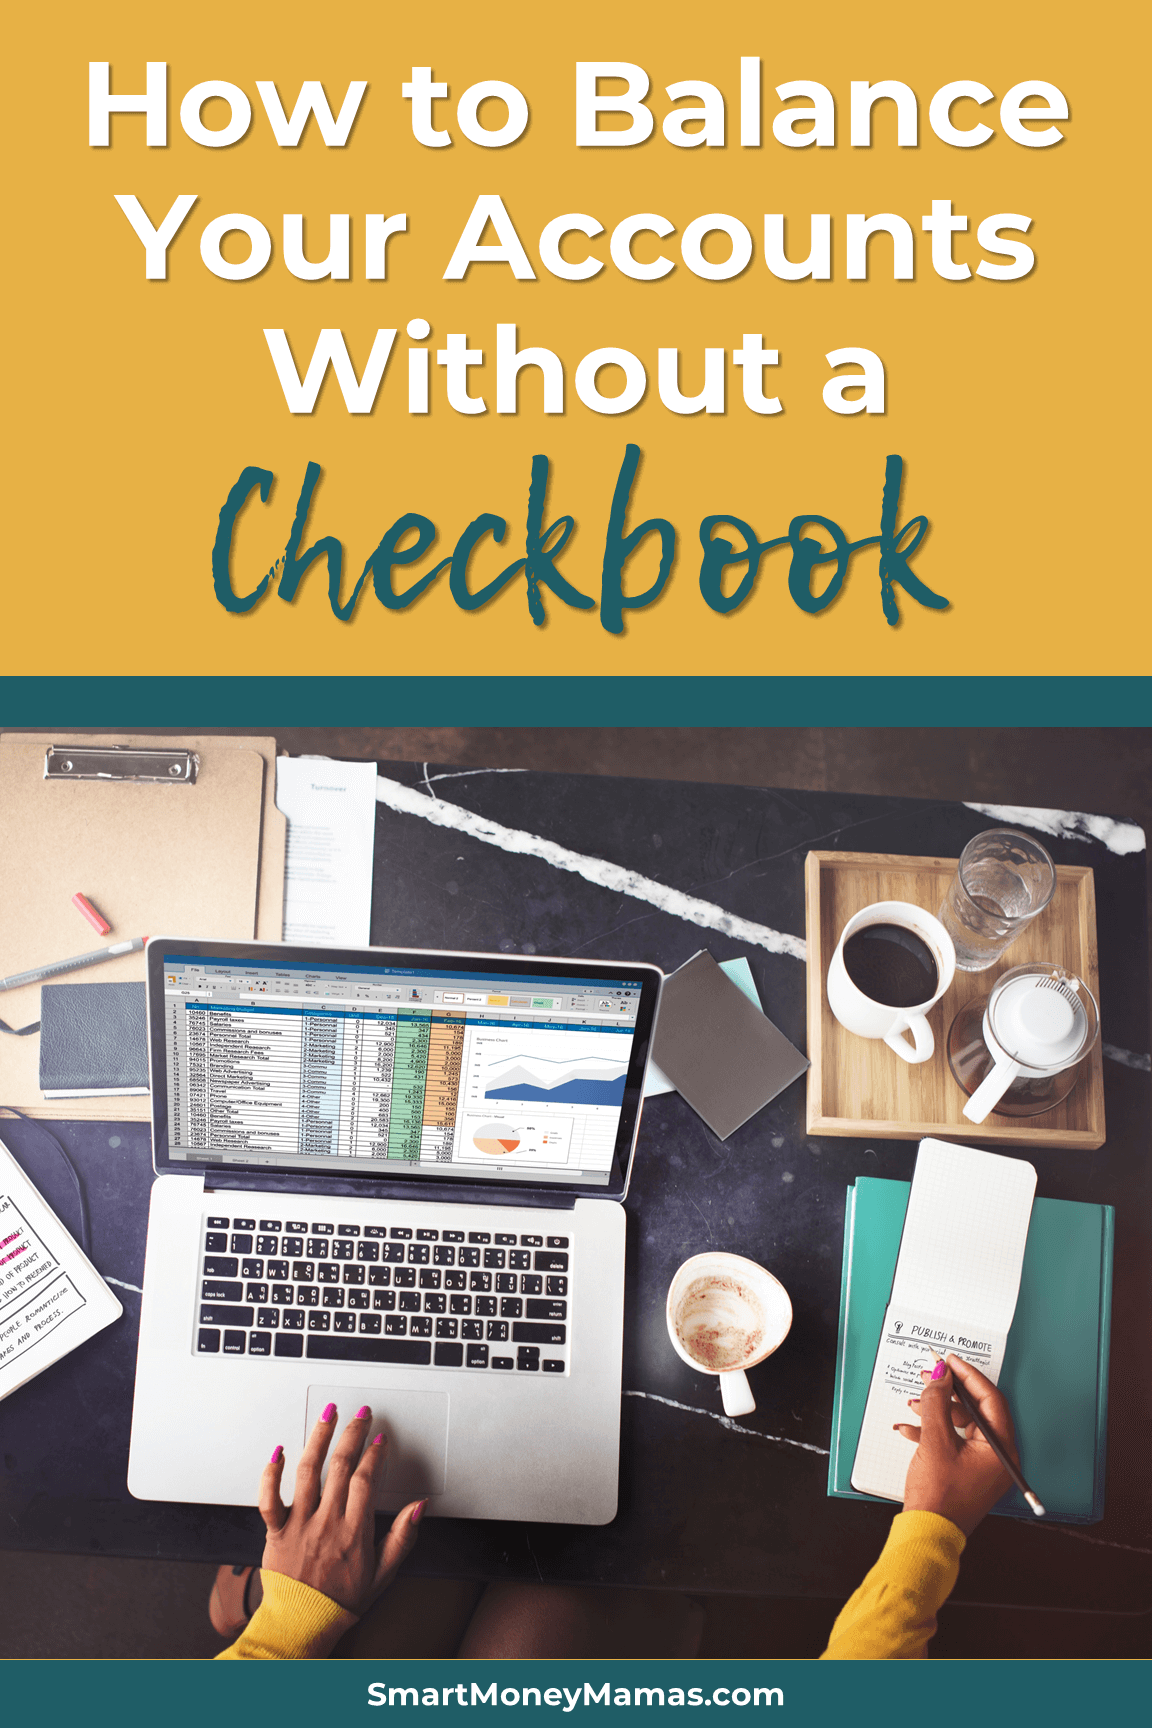 How to Manage Your Money When There's No Checkbook to Balance